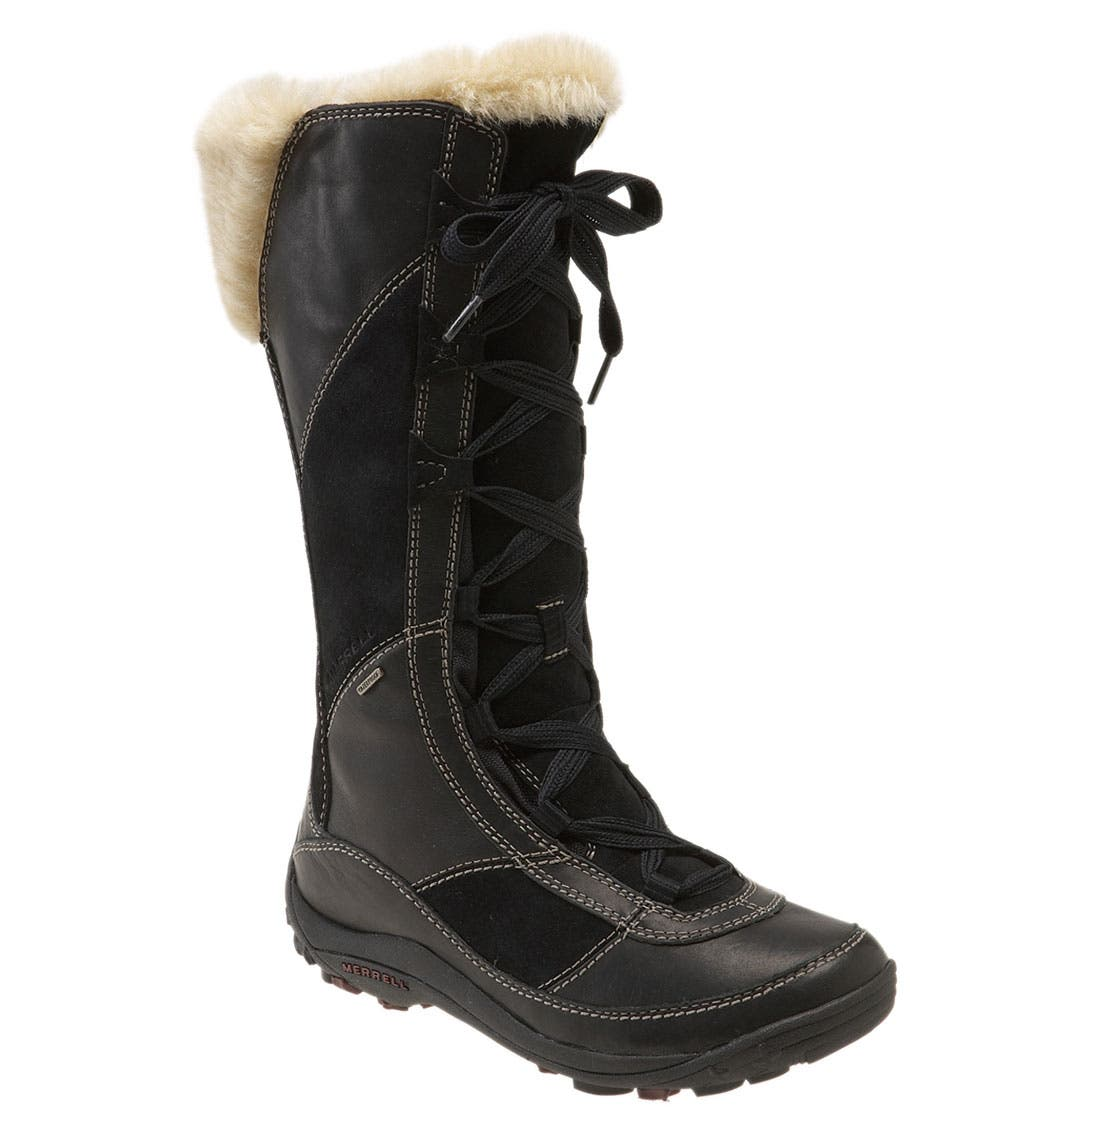 'Prevoz' Waterproof Tall Boot,                             Main thumbnail 1, color,                             001